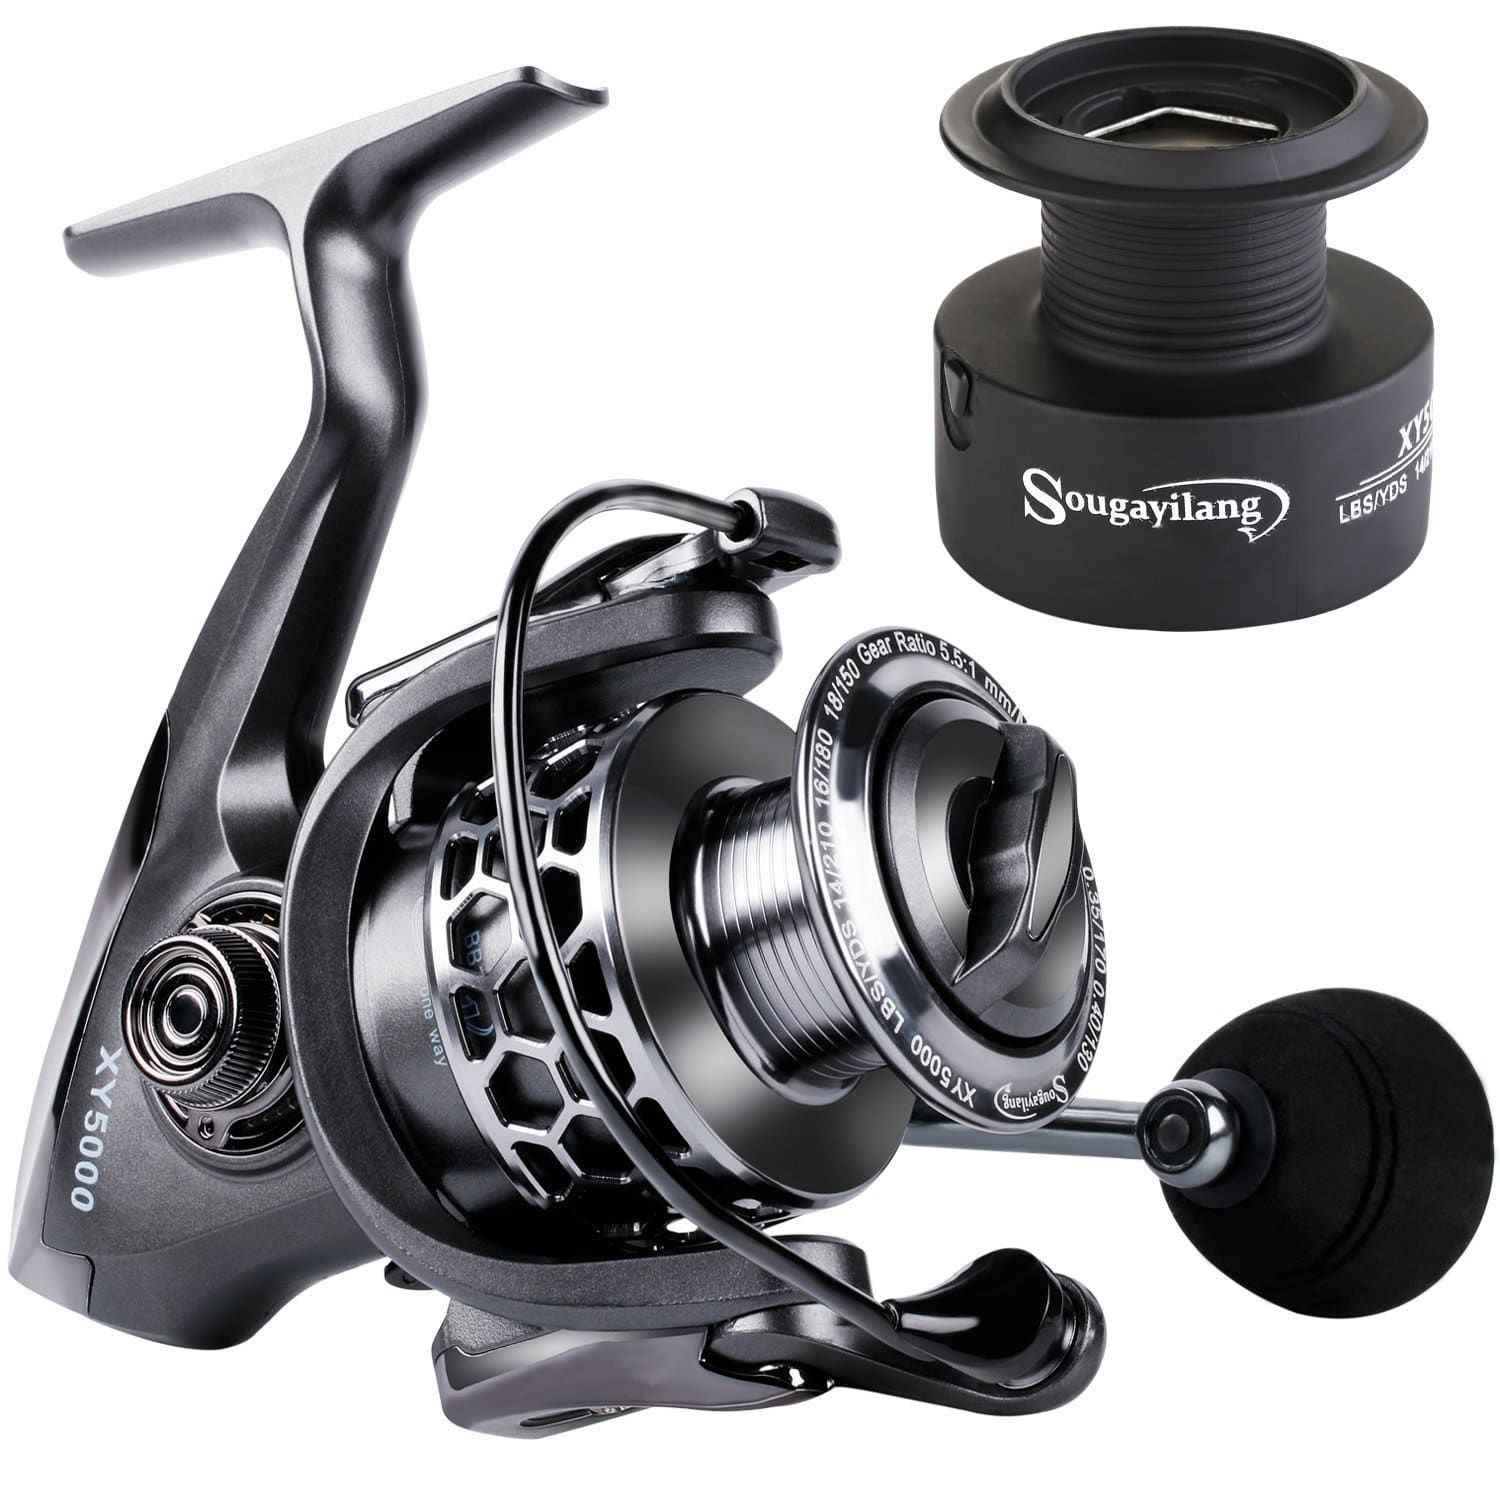 One Bass Fishing reels Light Weight Saltwater Spinning Reel 39.5 LB Carbon...